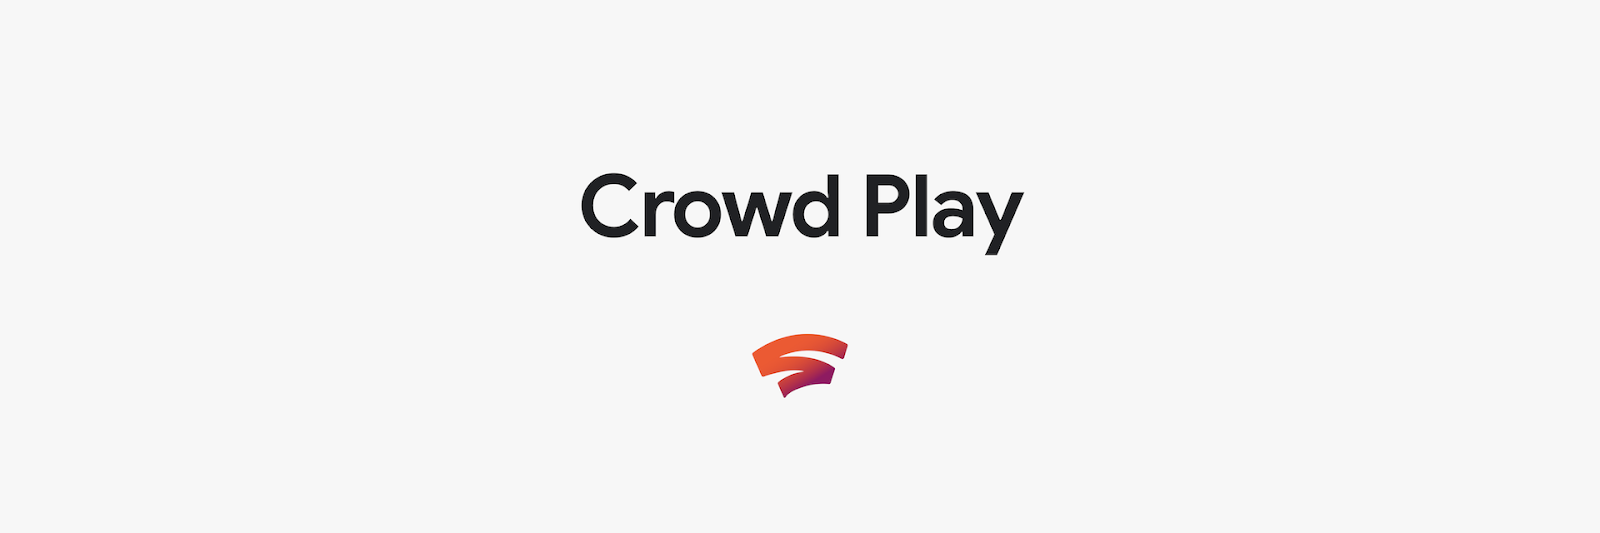 Jump Into Multiplayer Games On YouTube with Crowd Play Image